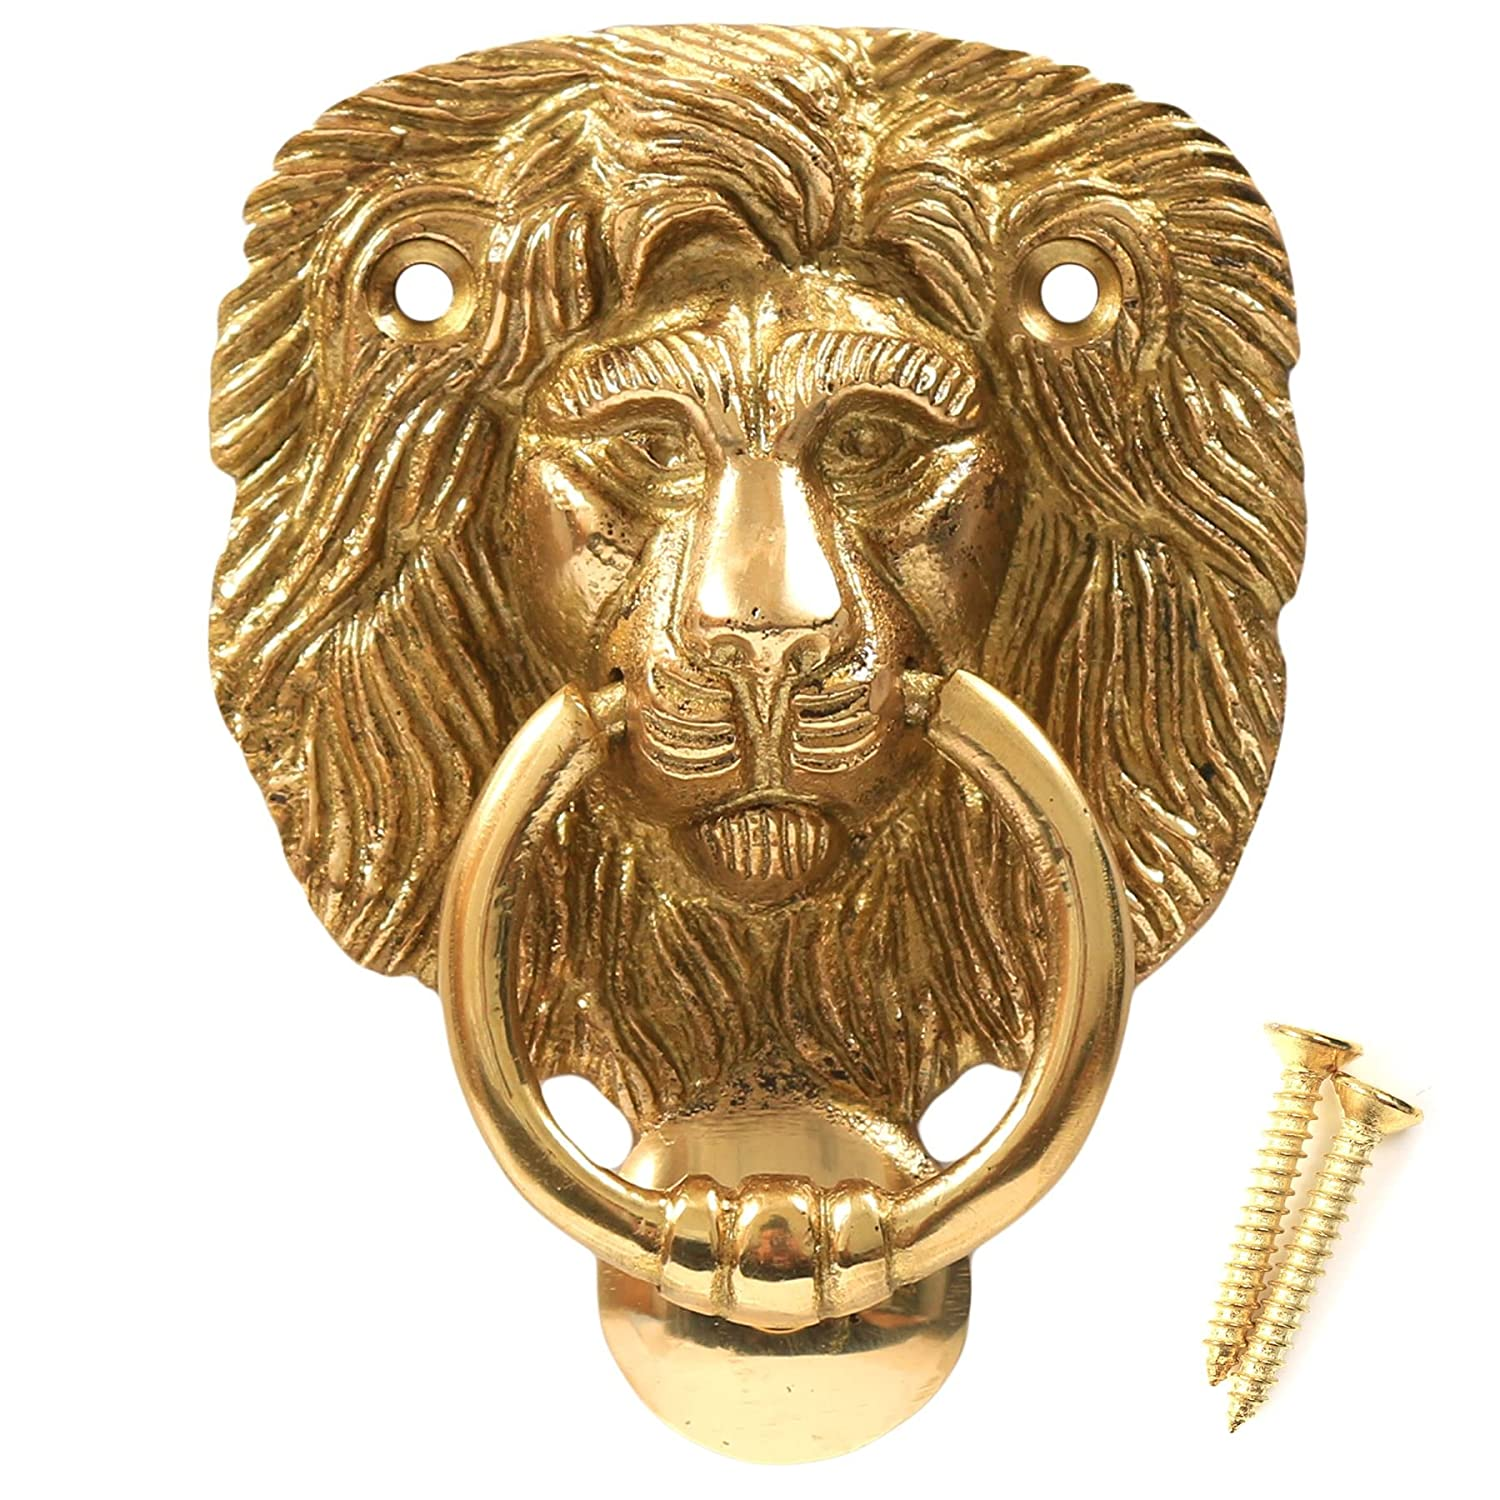 Polished Solid Brass Lion Head Door Knocker + Screws - Traditional Classic Victorian Style White Hinge